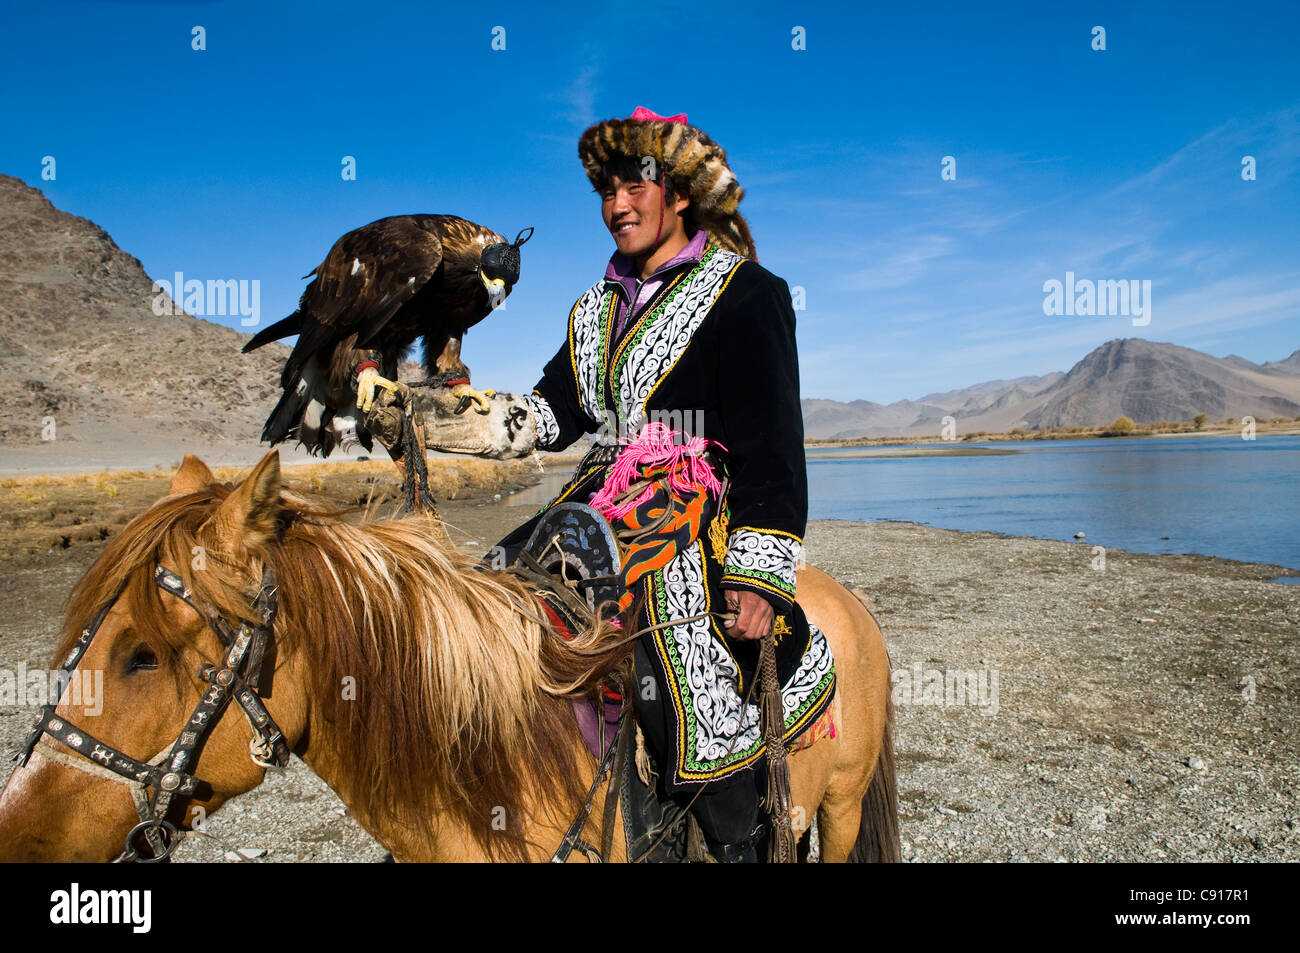 A Kazakh Eagle hunter with his Golden Eagle. - Stock Image